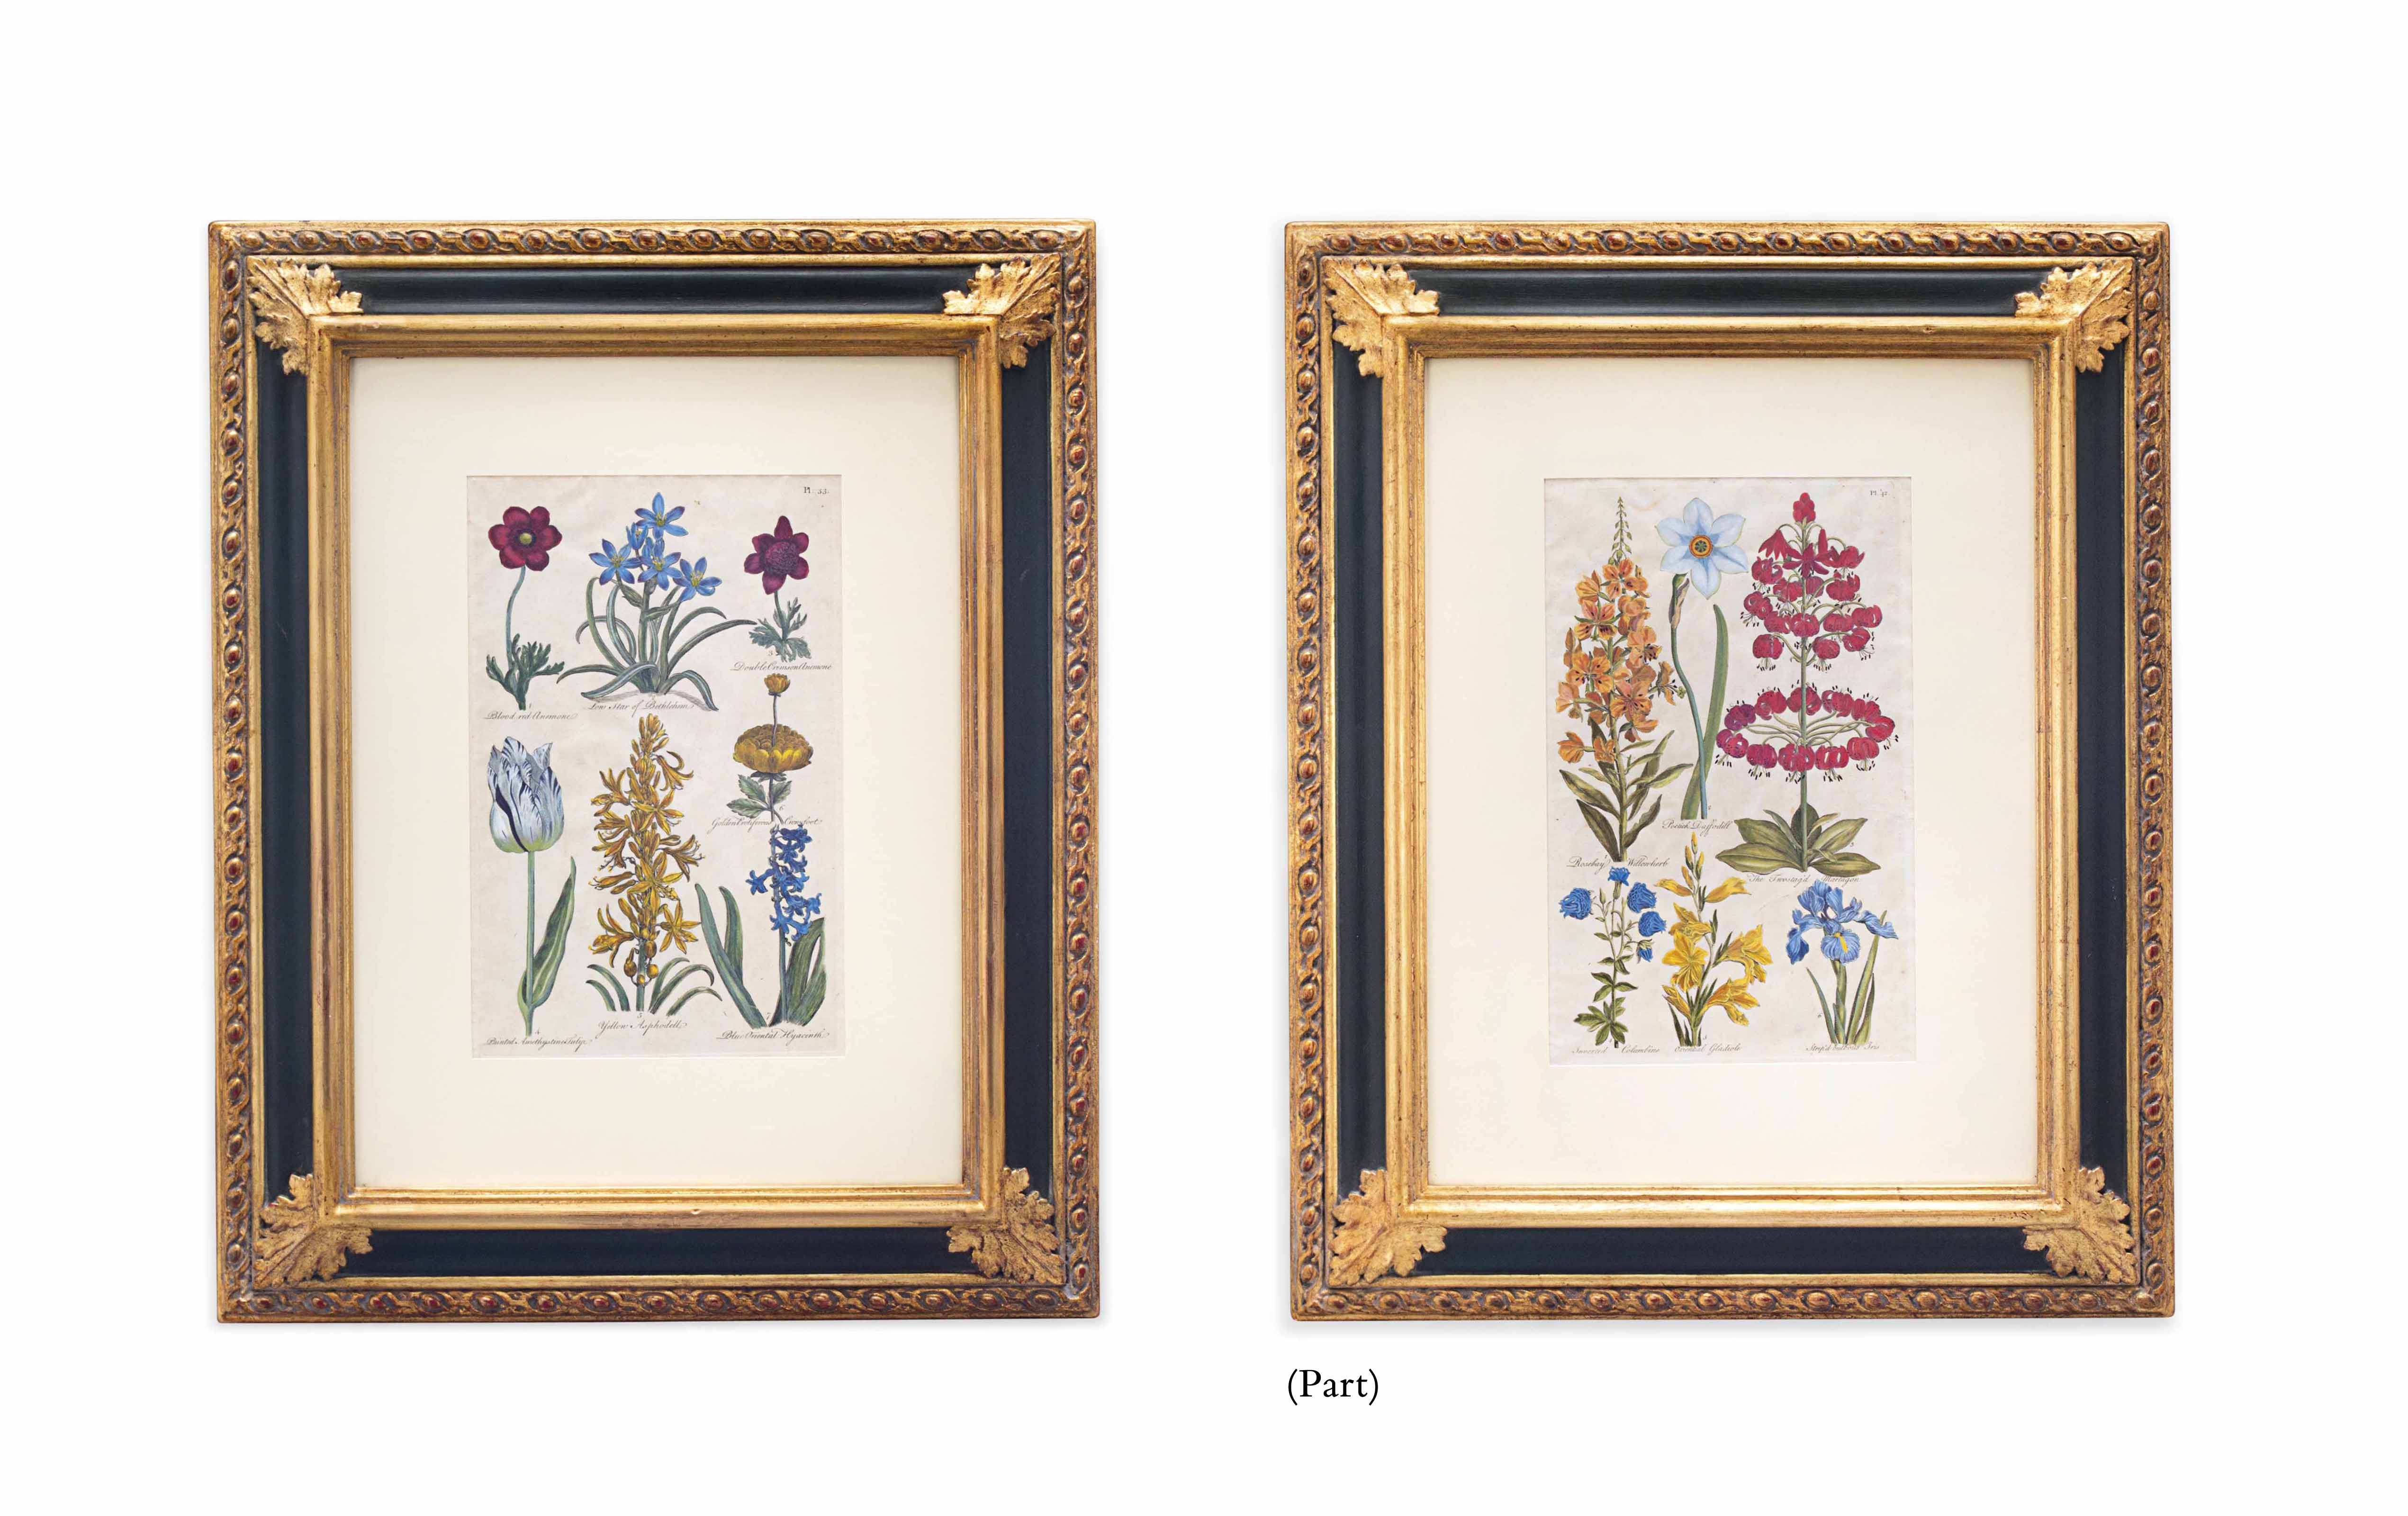 EIGHT BOTANICAL ENGRAVINGS OF FLOWERING PLANTS